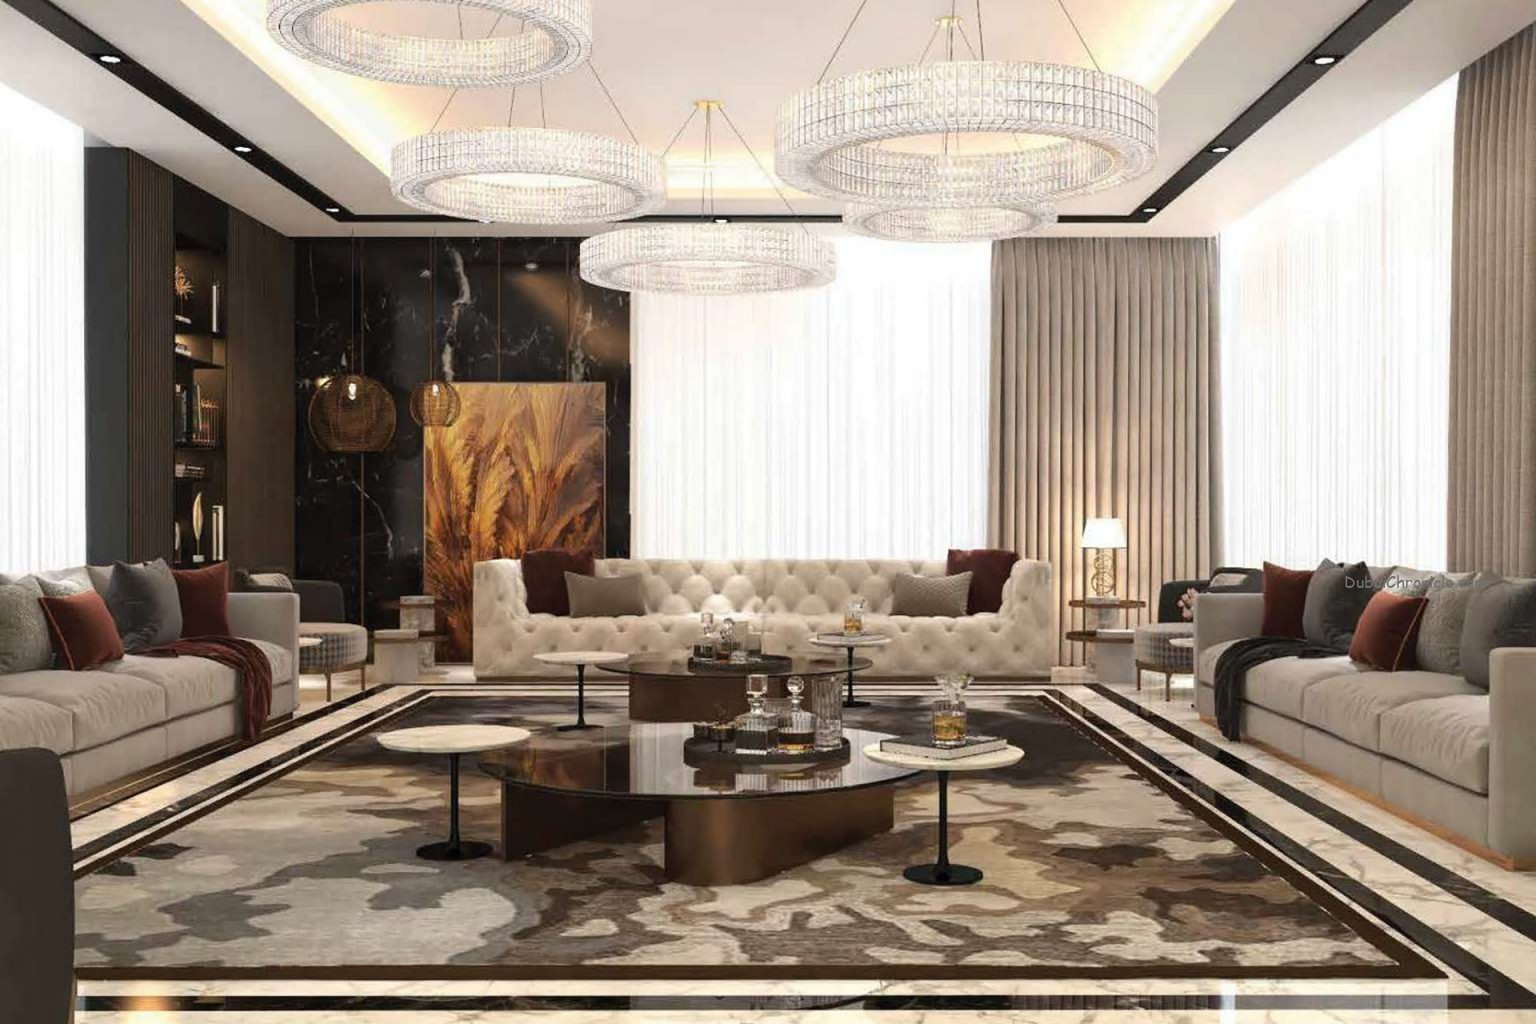 Art Deco Design is renowned for their superior work in all areas of interior and architectural design.